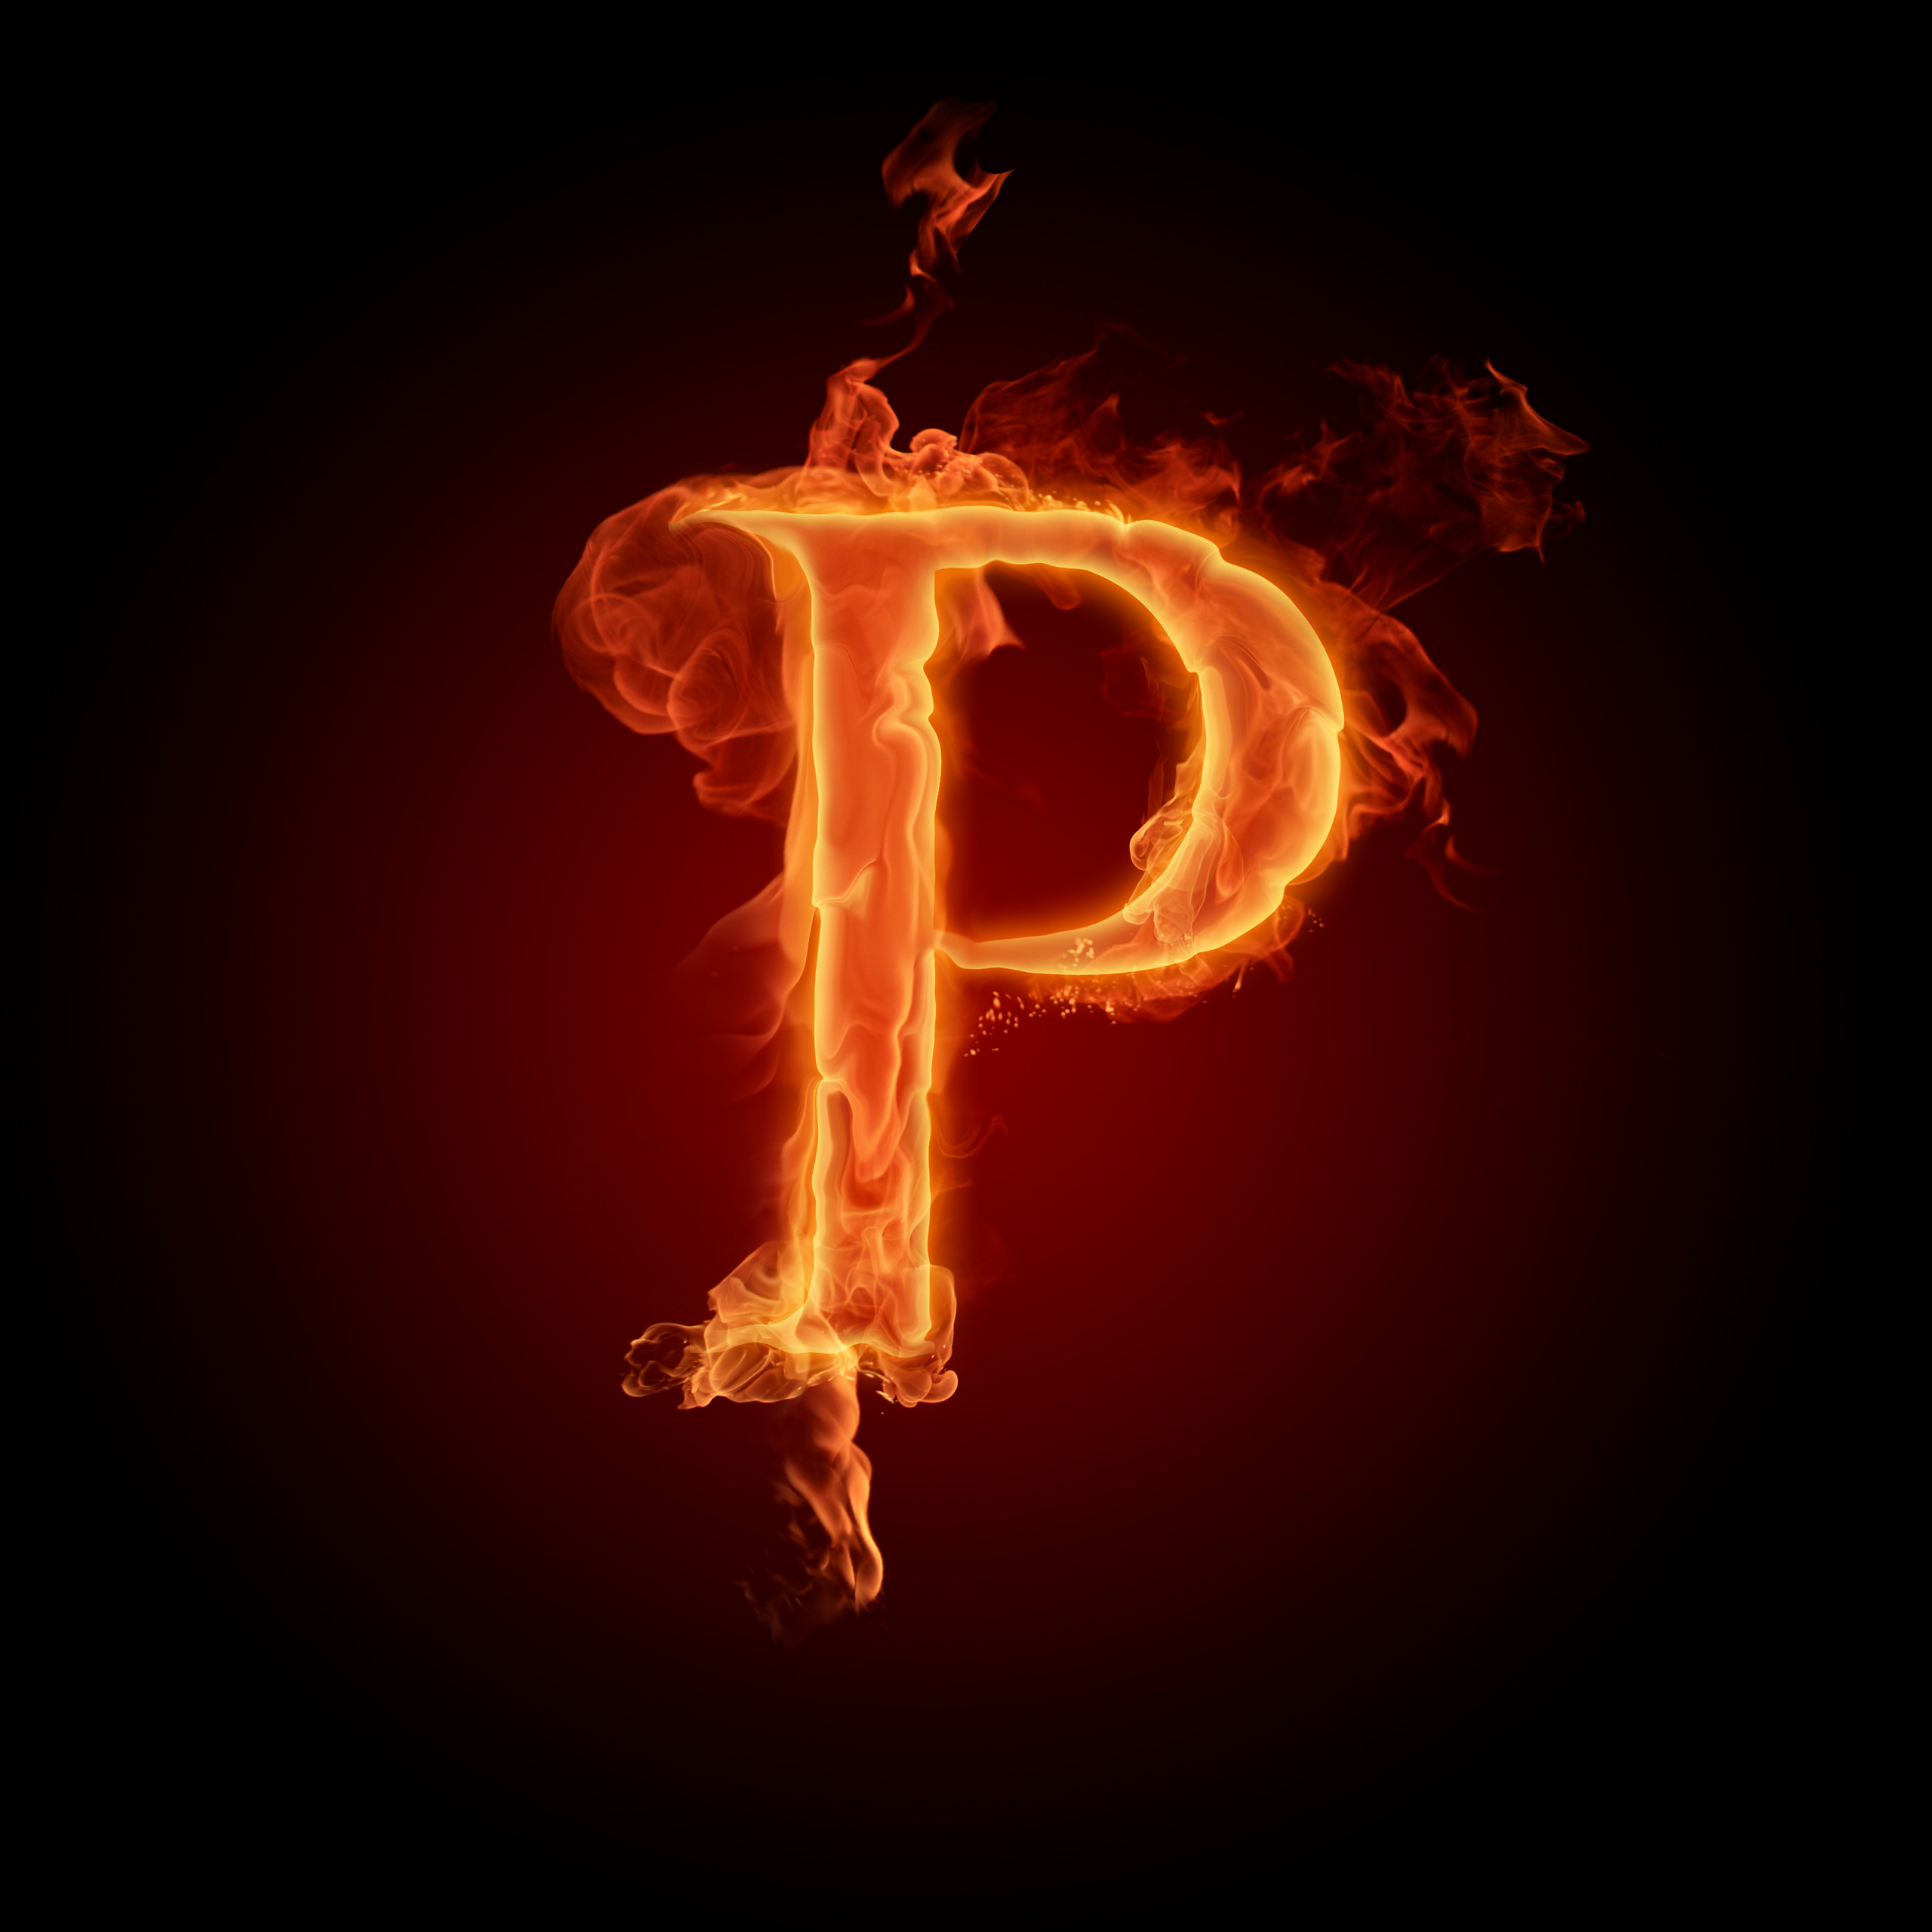 Exceptional The Letter P Images The Letter P HD Wallpaper And Background Photos  P&l Sheet